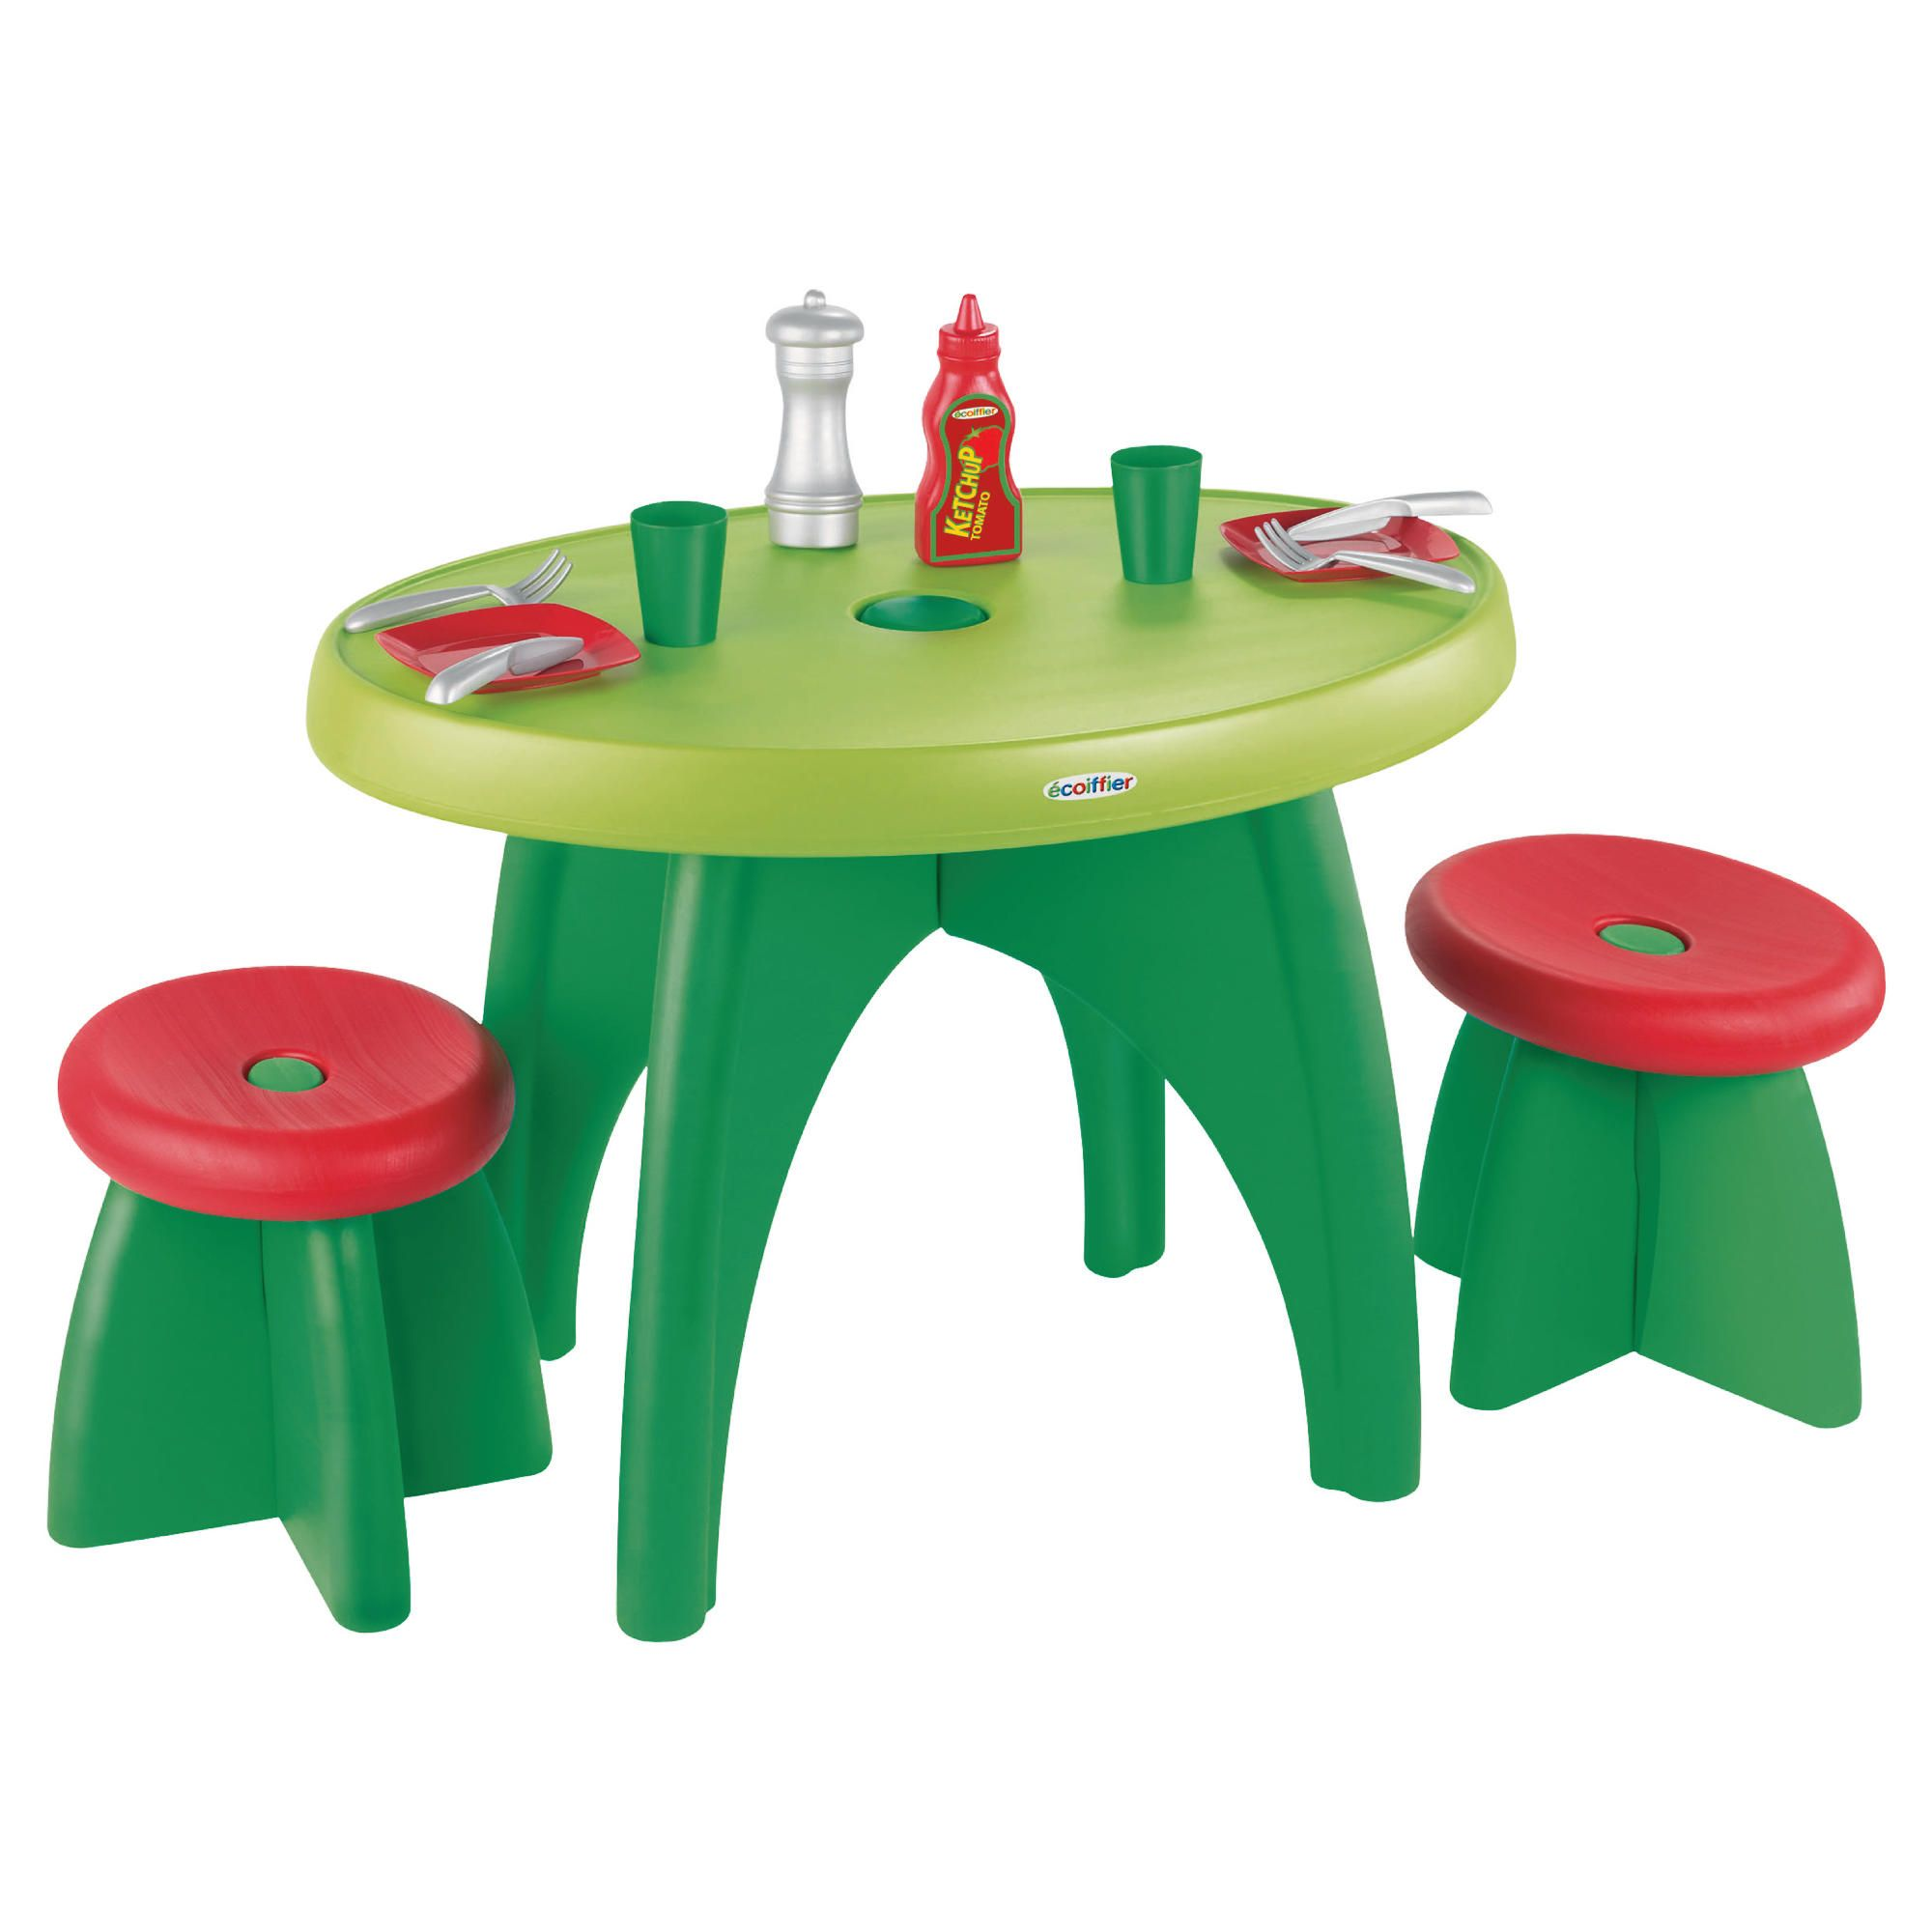 Ecoiffier Picnic Table & Two Stools